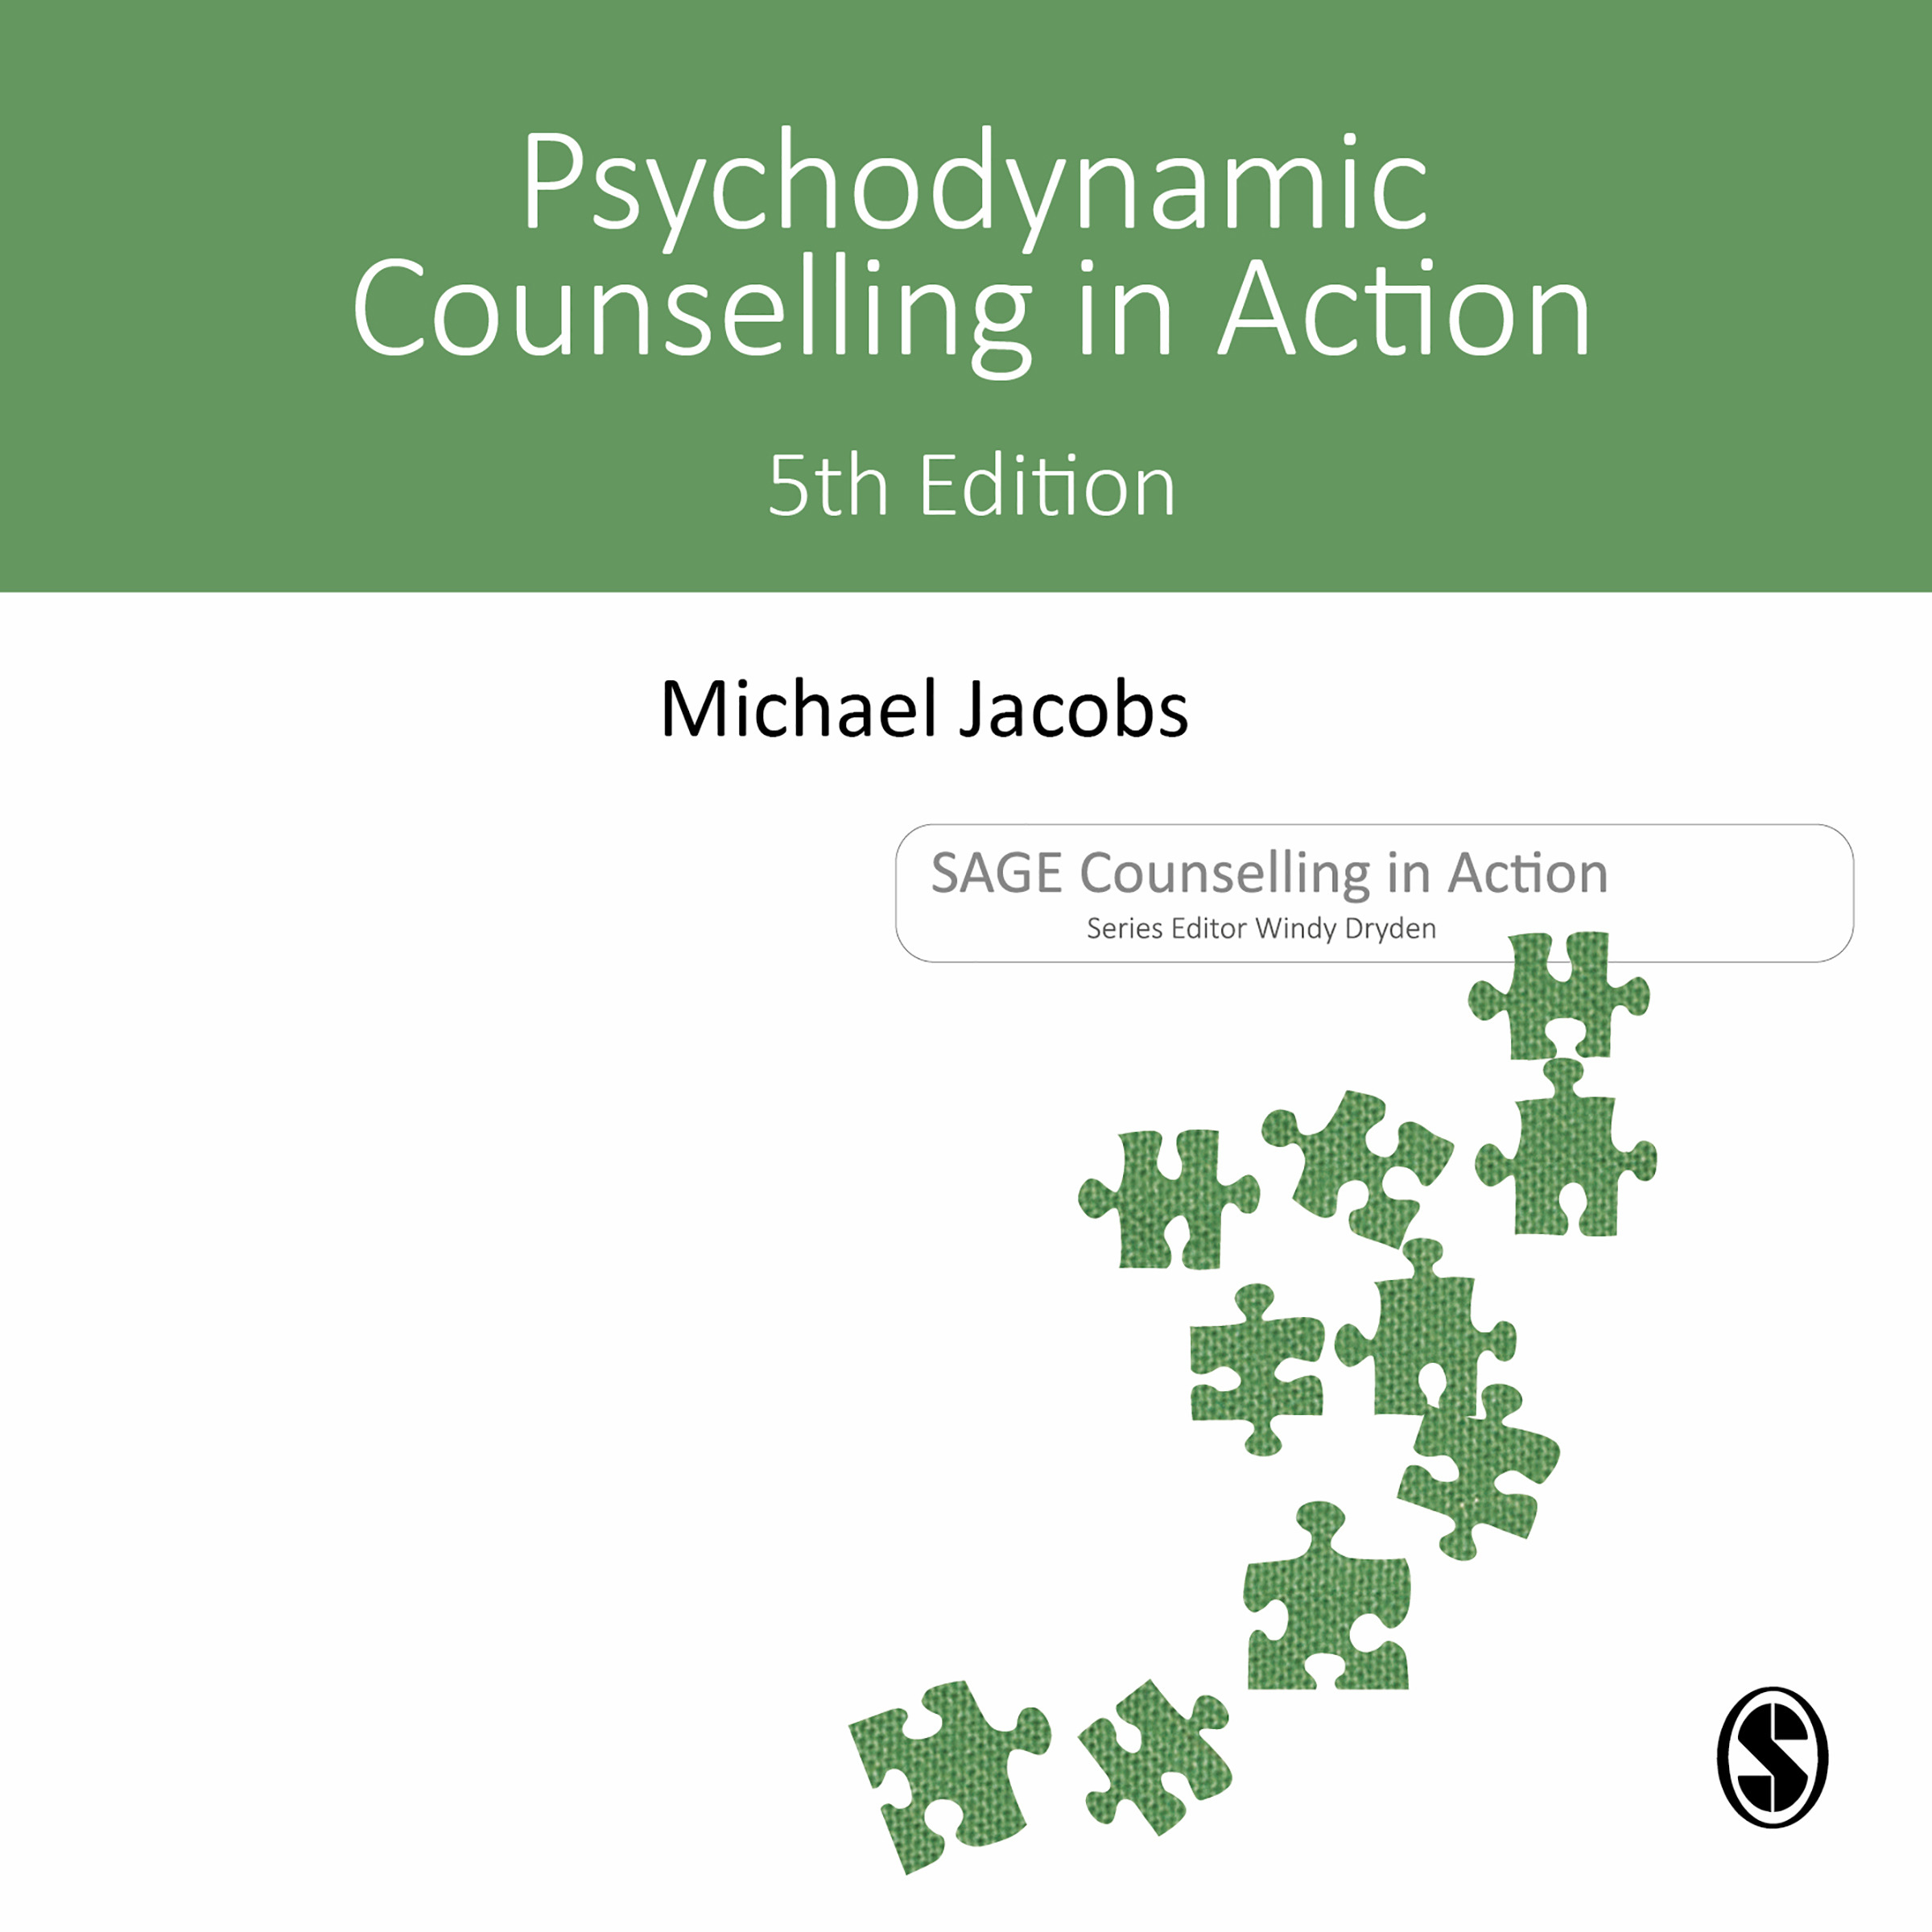 Psychodynamic Counselling in Action image